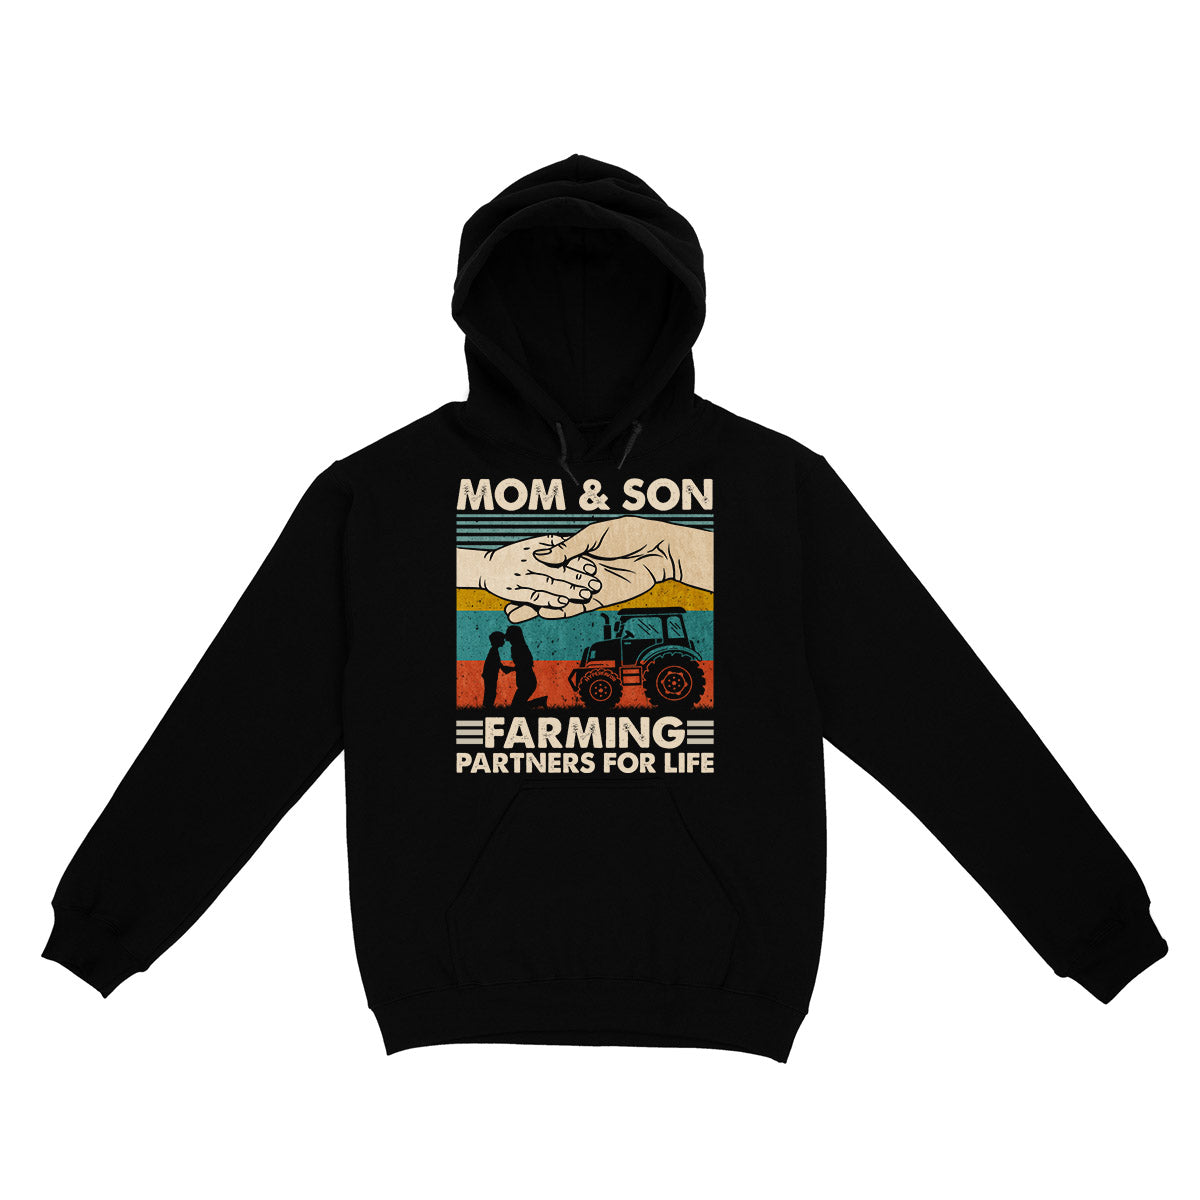 Mom and Son Farming Partners for Life EZ03 0304 Hoodie